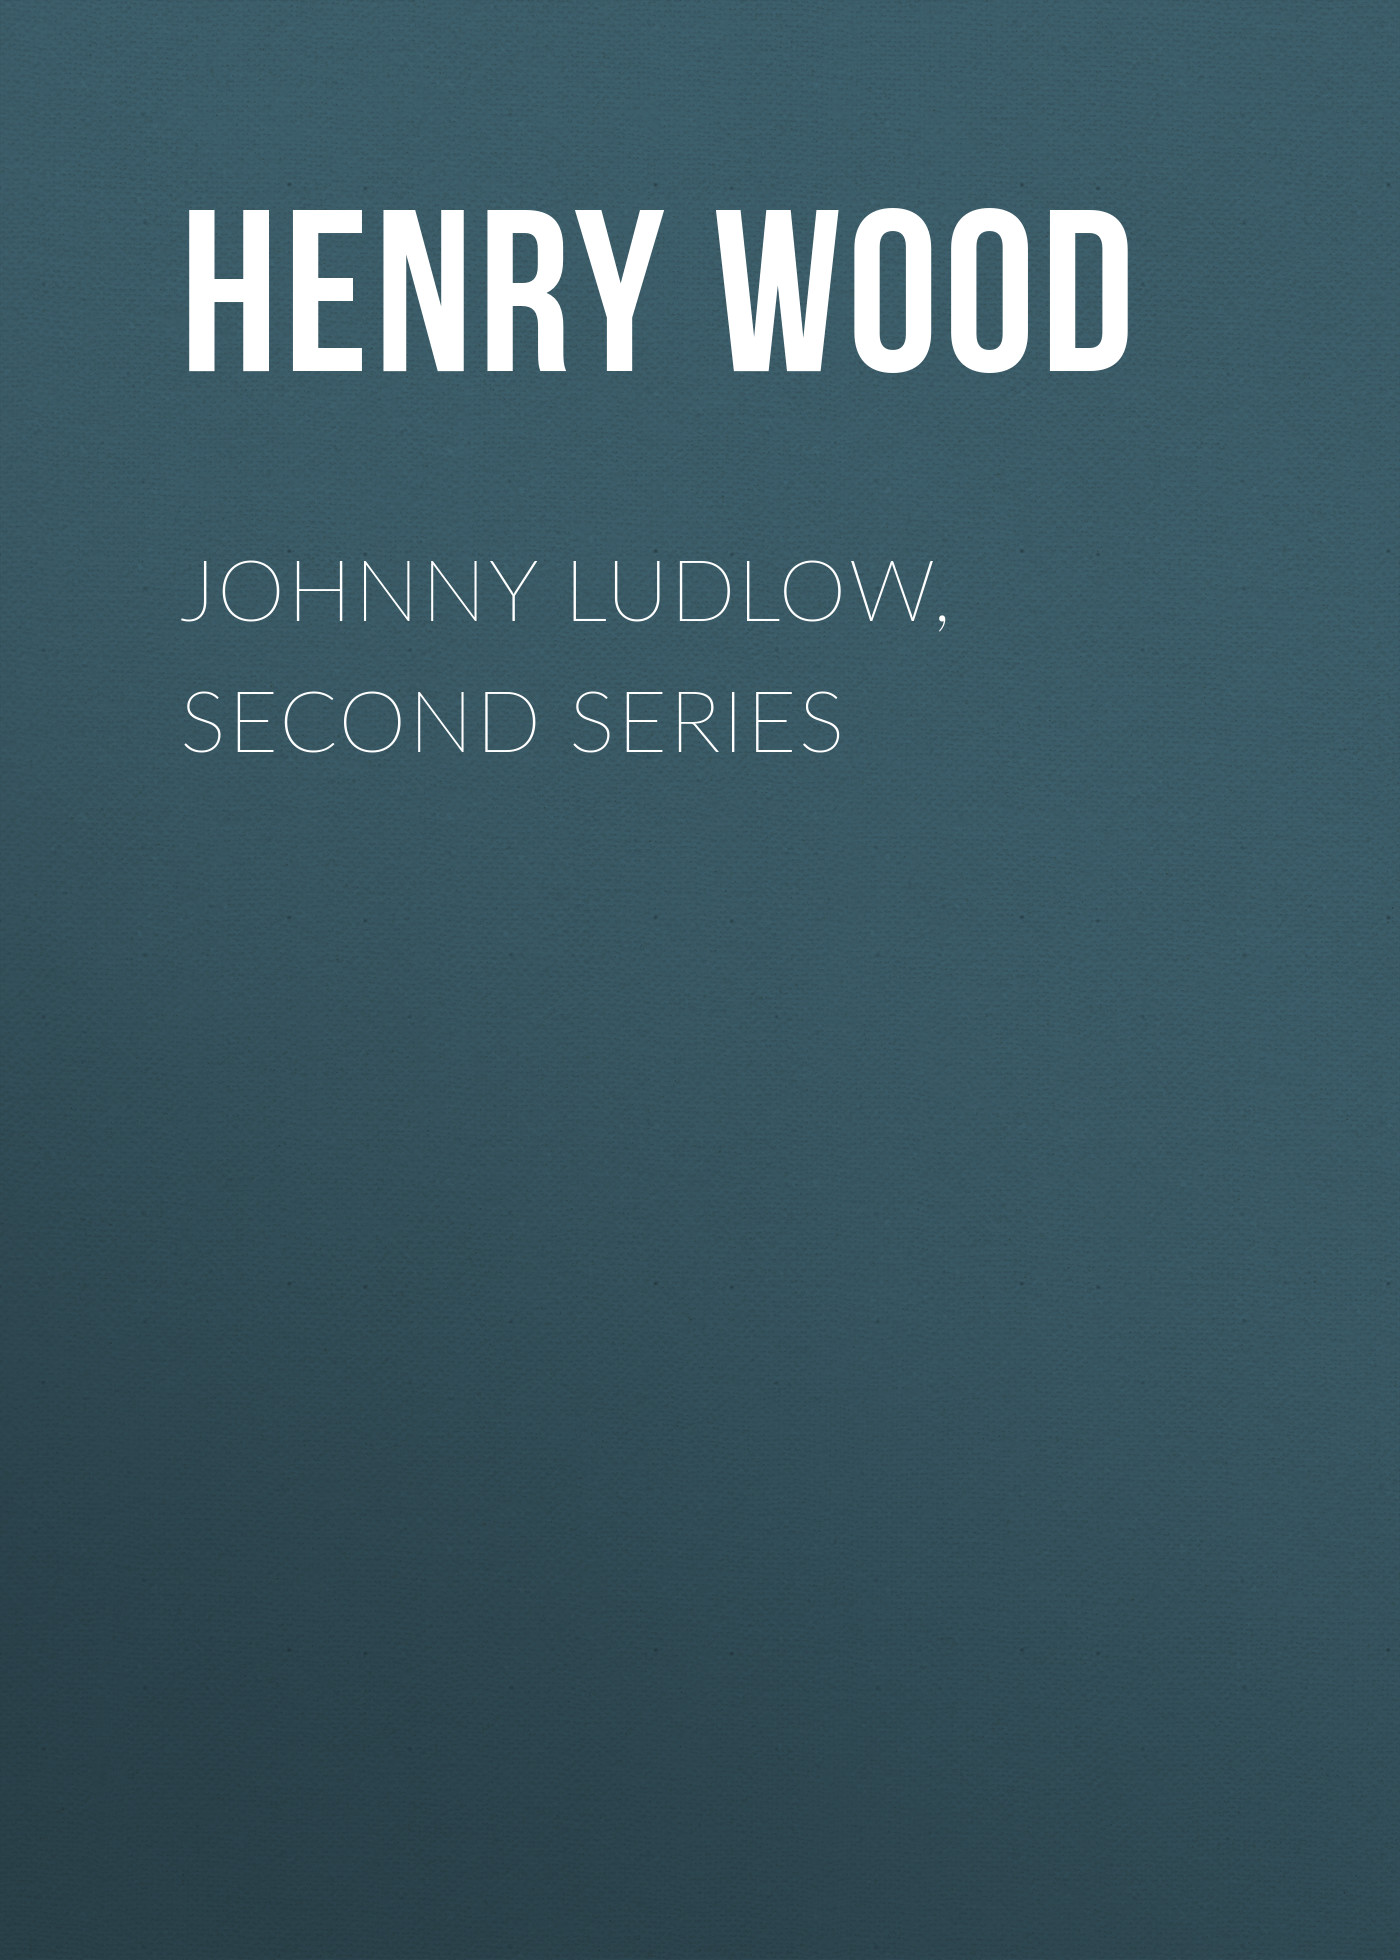 Henry Wood Johnny Ludlow, Second Series